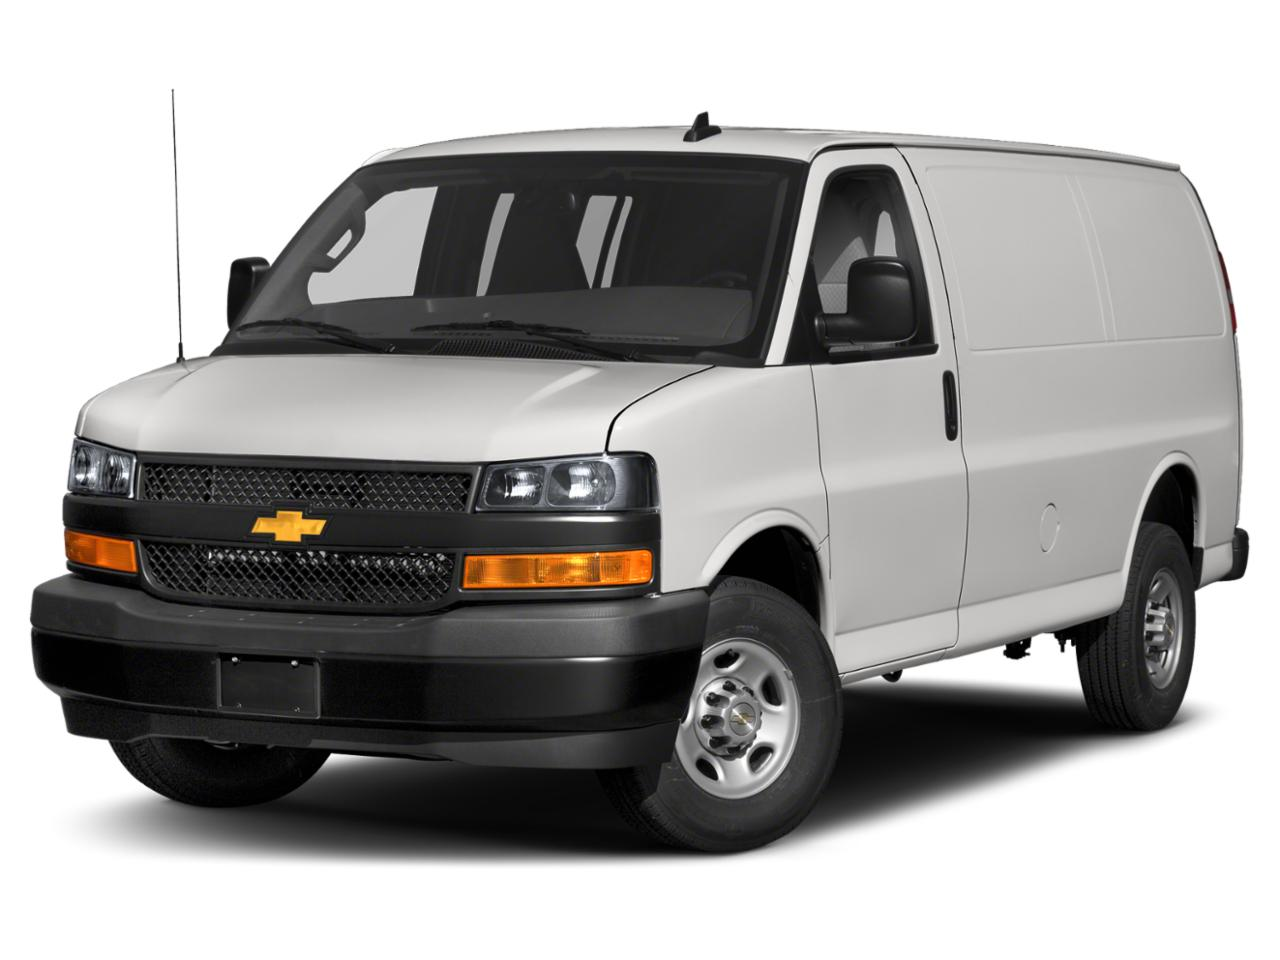 2020 Chevrolet Express Cargo Van Vehicle Photo in Puyallup, WA 98371